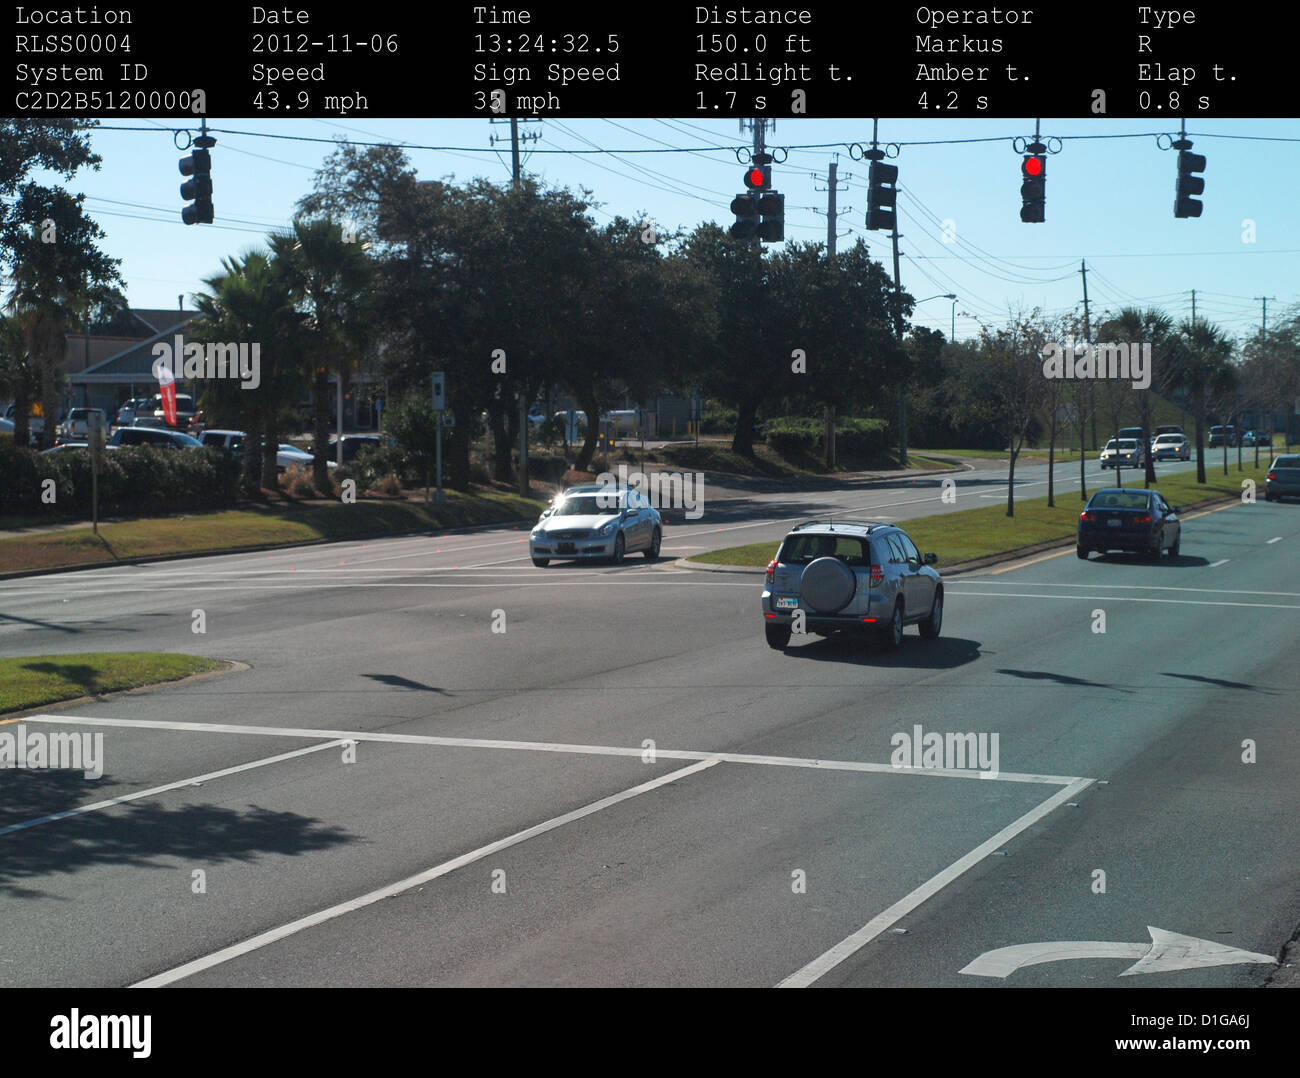 Gulf Breeze Police Department Traffic Camera Photographing A Silver Toyota  Rav4 Running A Red Light In Gulf Breeze, Florida.